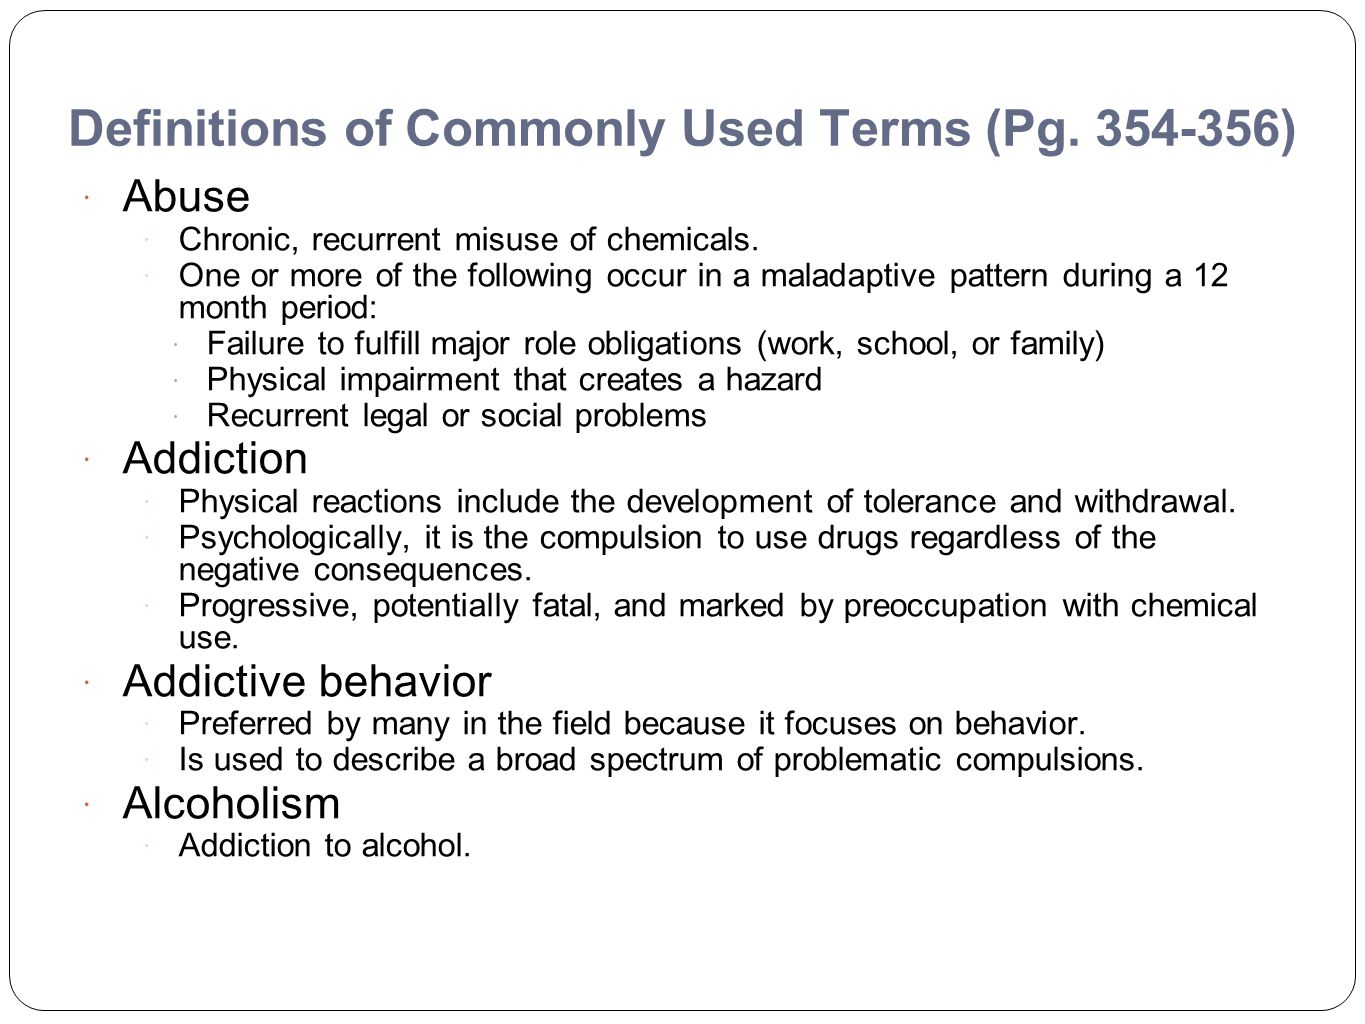 Definitions of Commonly Used Terms (Pg. 354-356)